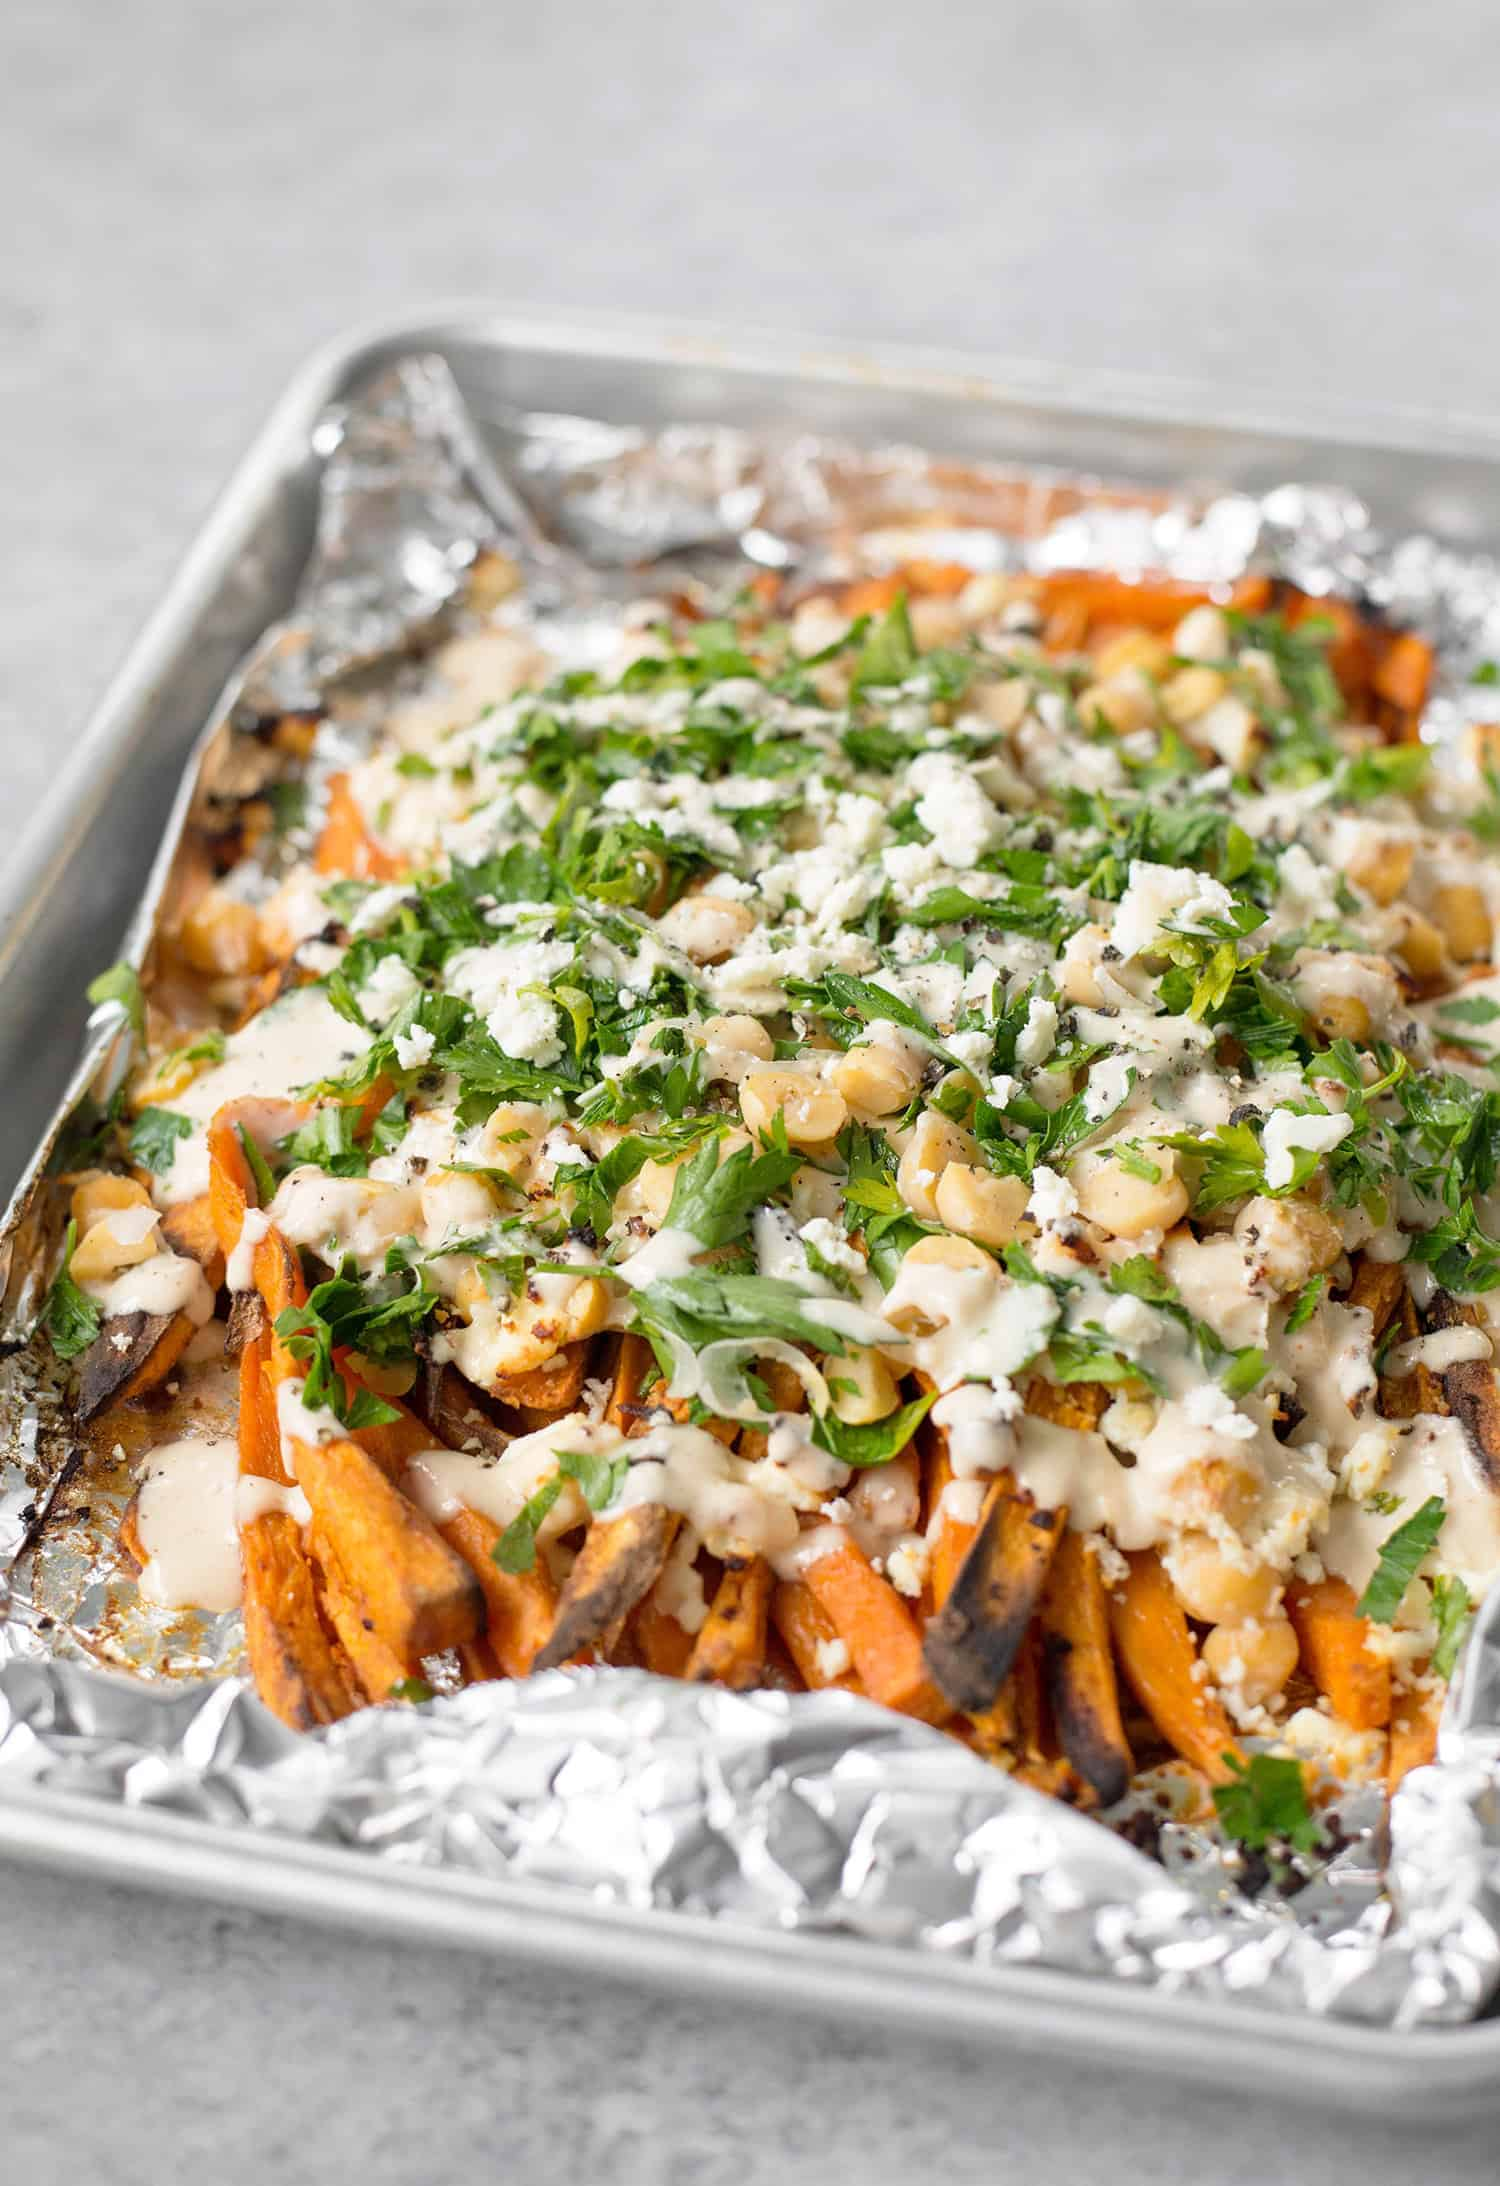 Loaded Sweet Potato Greek Fries! Crispy sweet potato fries with feta, chickpeas, parsley and a lemon-tahini sauce. Vegetarian and gluten-free | www.delishknowledge.com